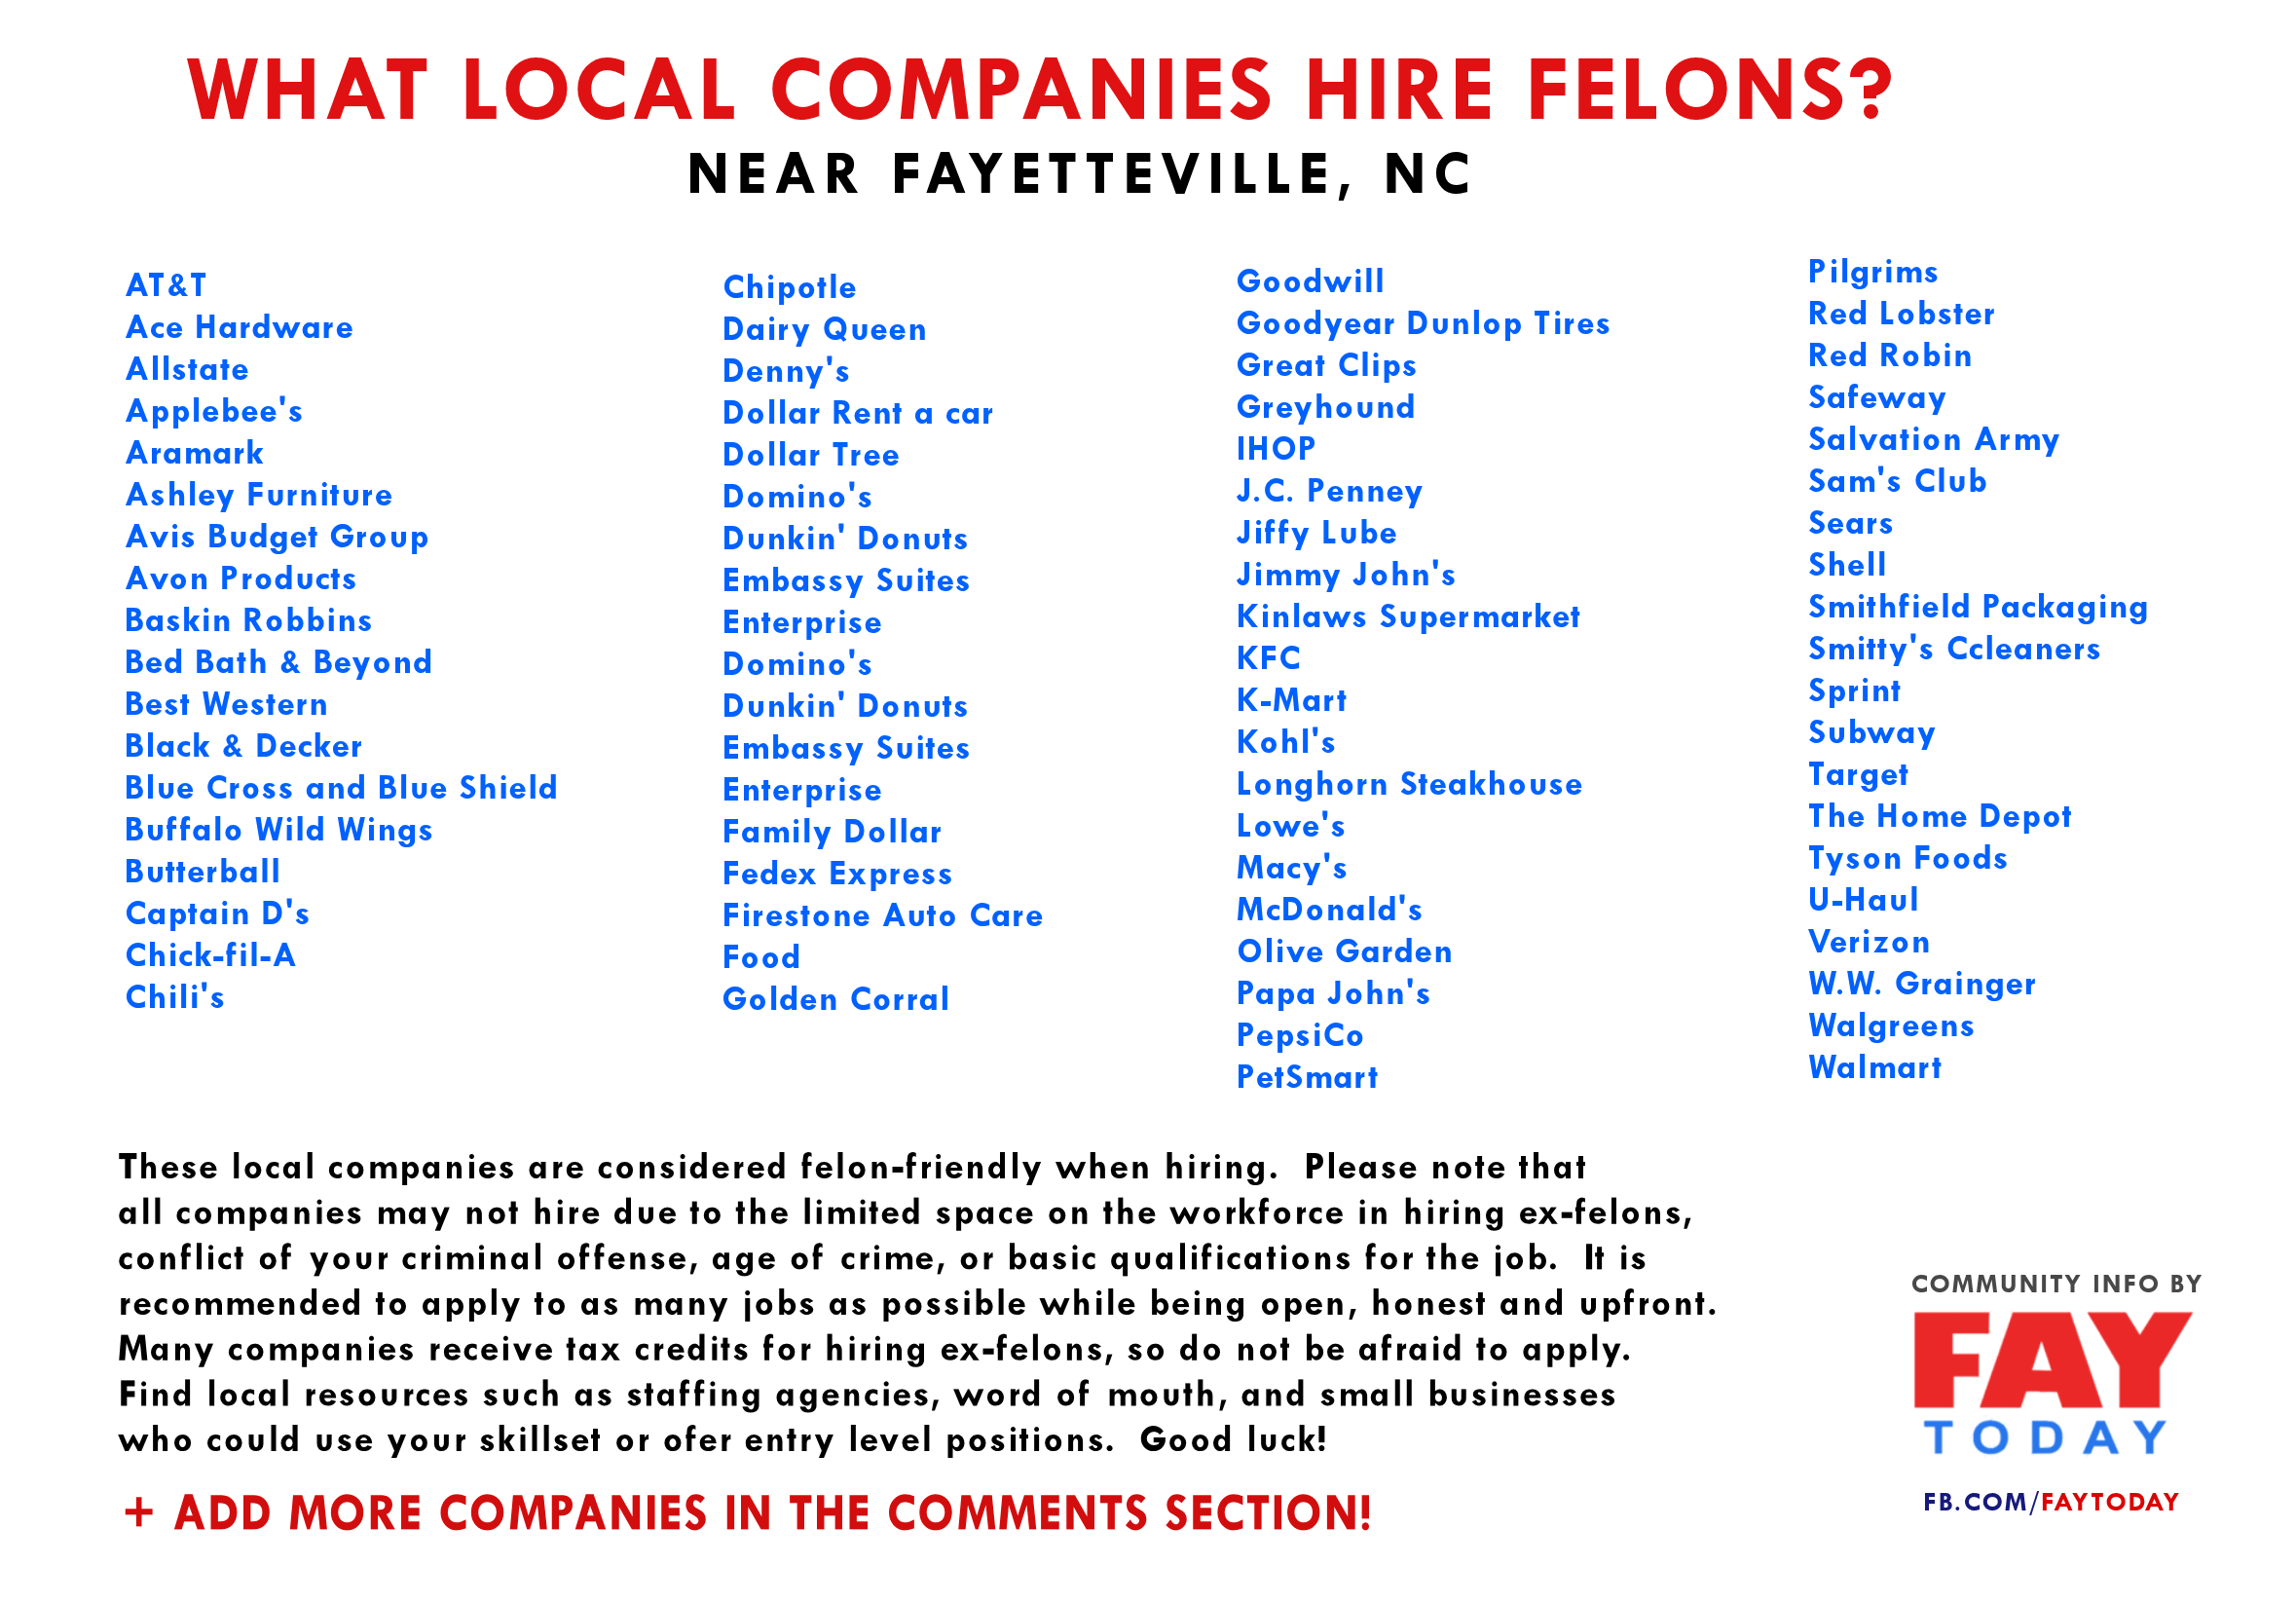 Jobs That Hire Felons In Fayetteville Nc